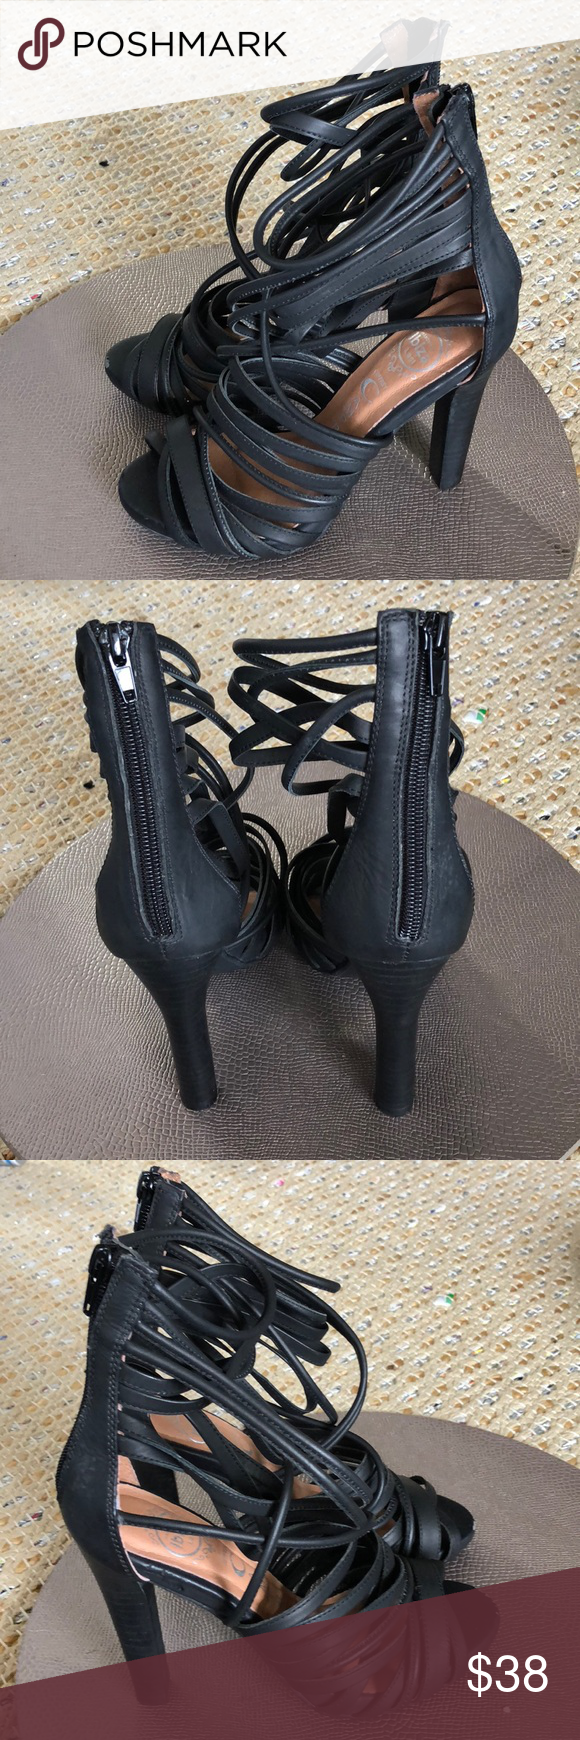 Jeffrey Campbell Cages Heels 7 New Jeffrey Campbell Cages Heels Size 7 Price reflects scuff on front of both heels  🌺 Jeffrey Campbell Shoes Sandals